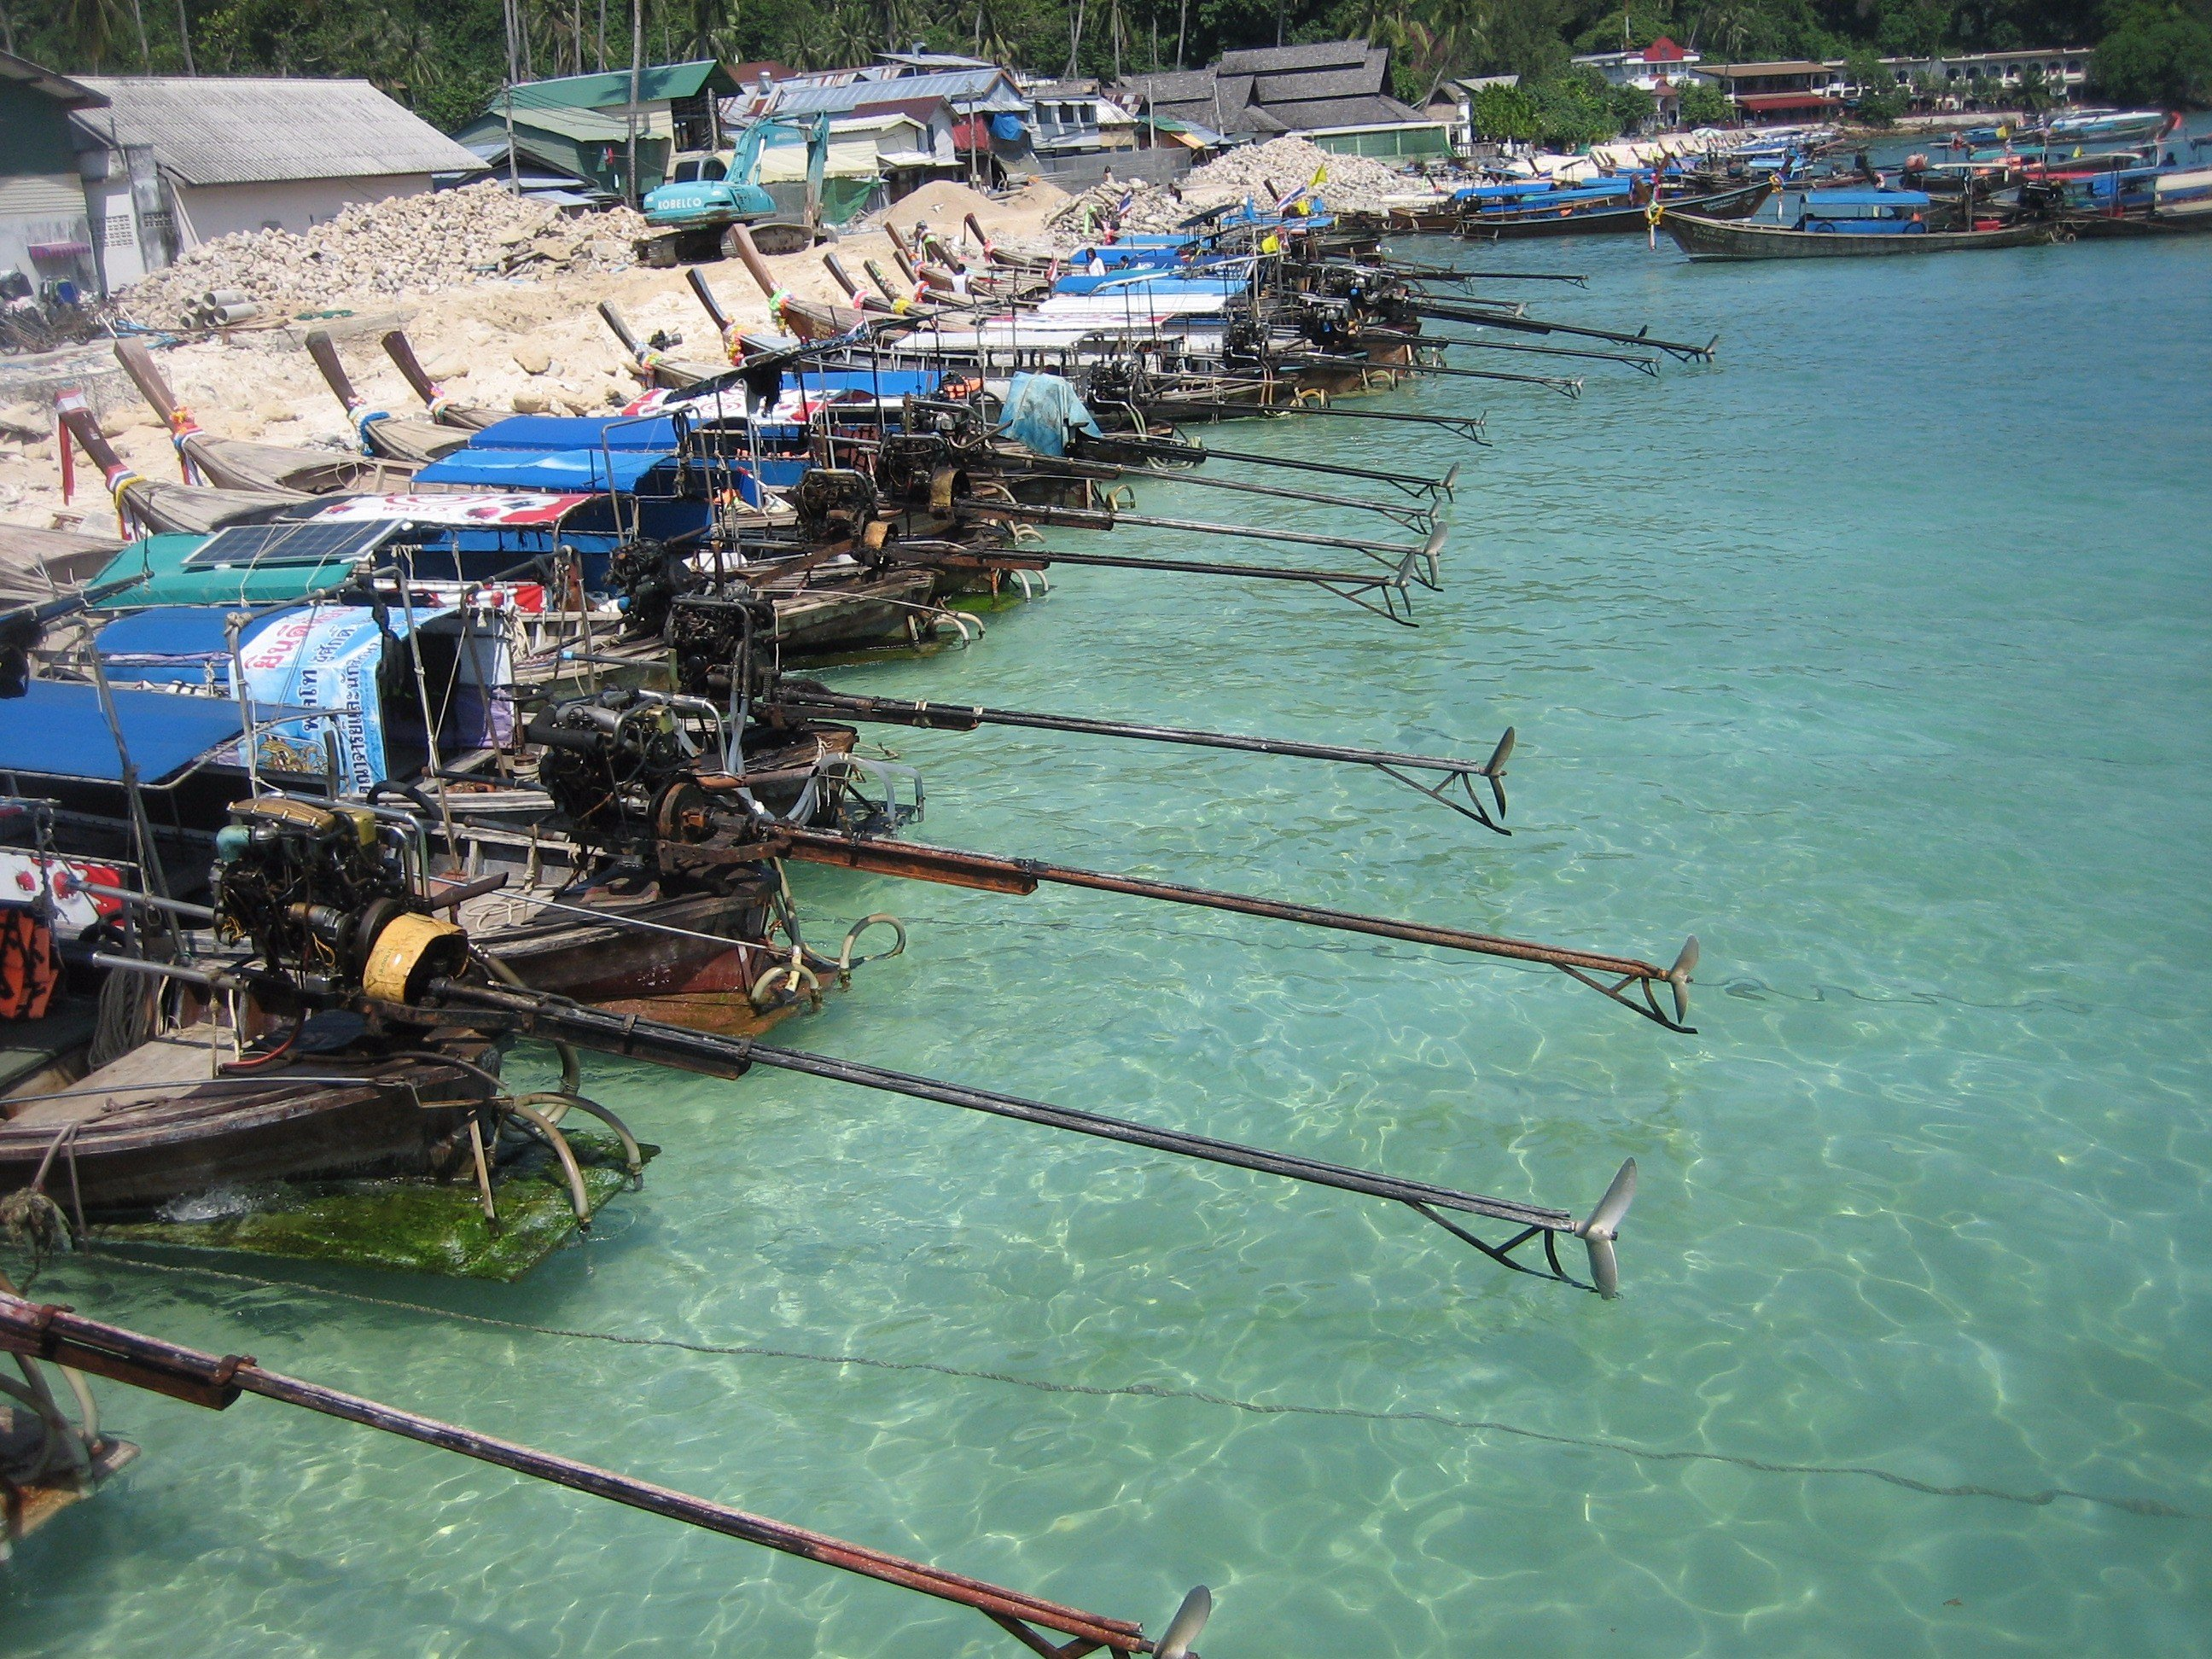 Long-tail boats are the main means of transportation in the Andaman Sea.